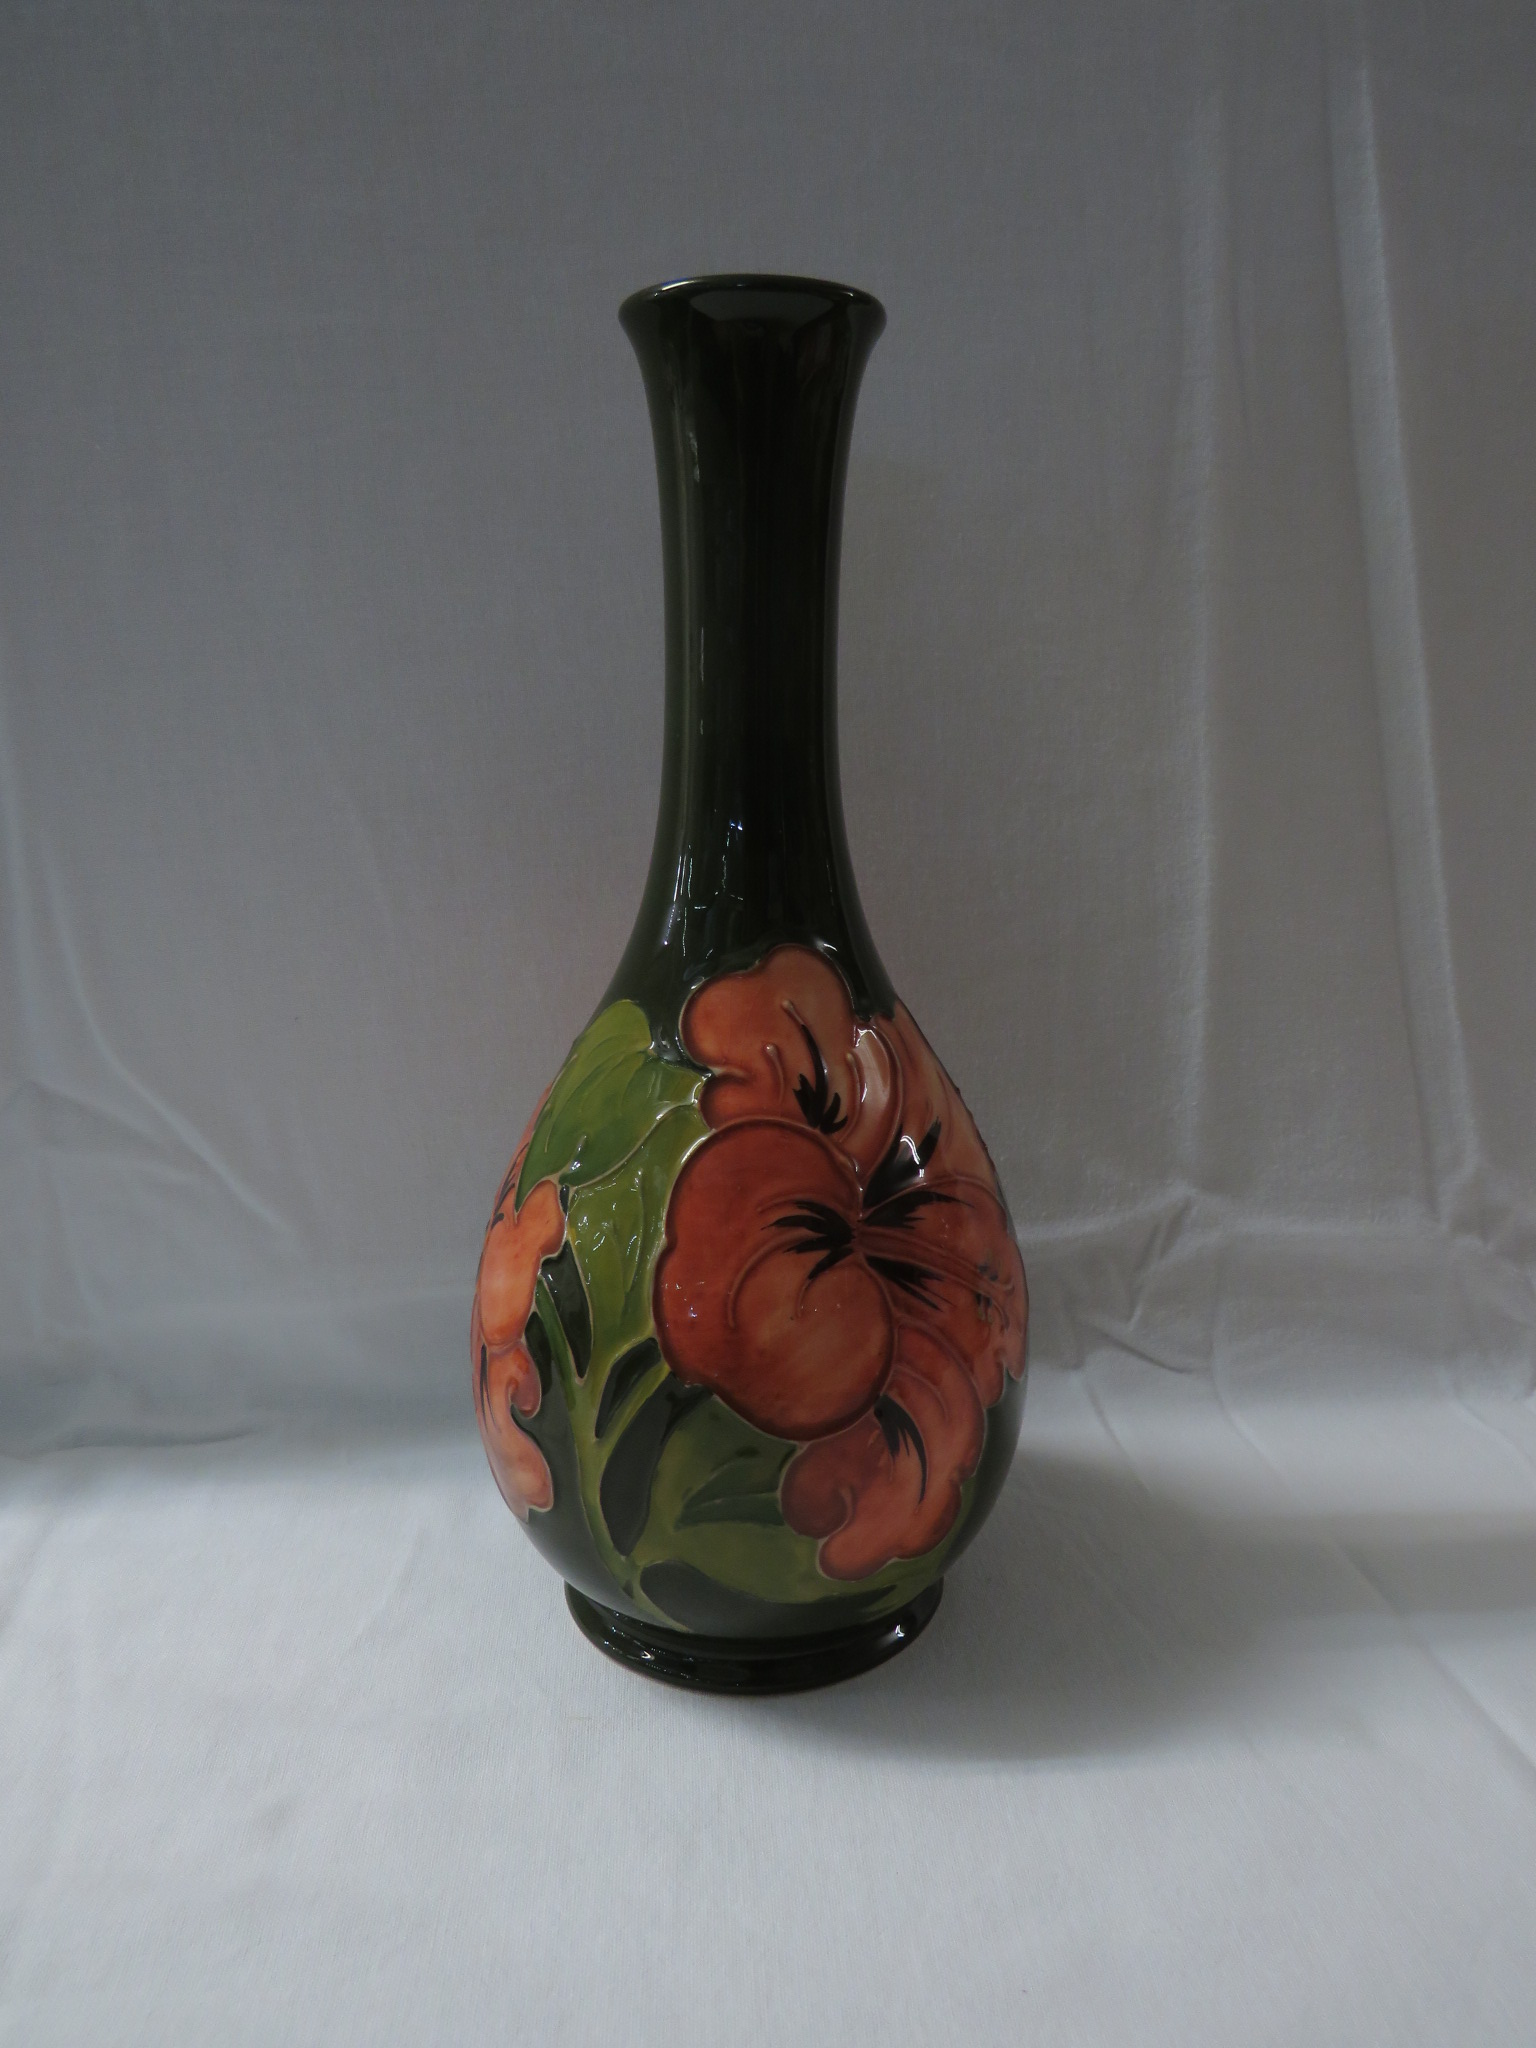 Lot 6 - Moorcroft pottery bottle vase, green ground painted with pink anemones, stamped MOORCROFT MADE IN